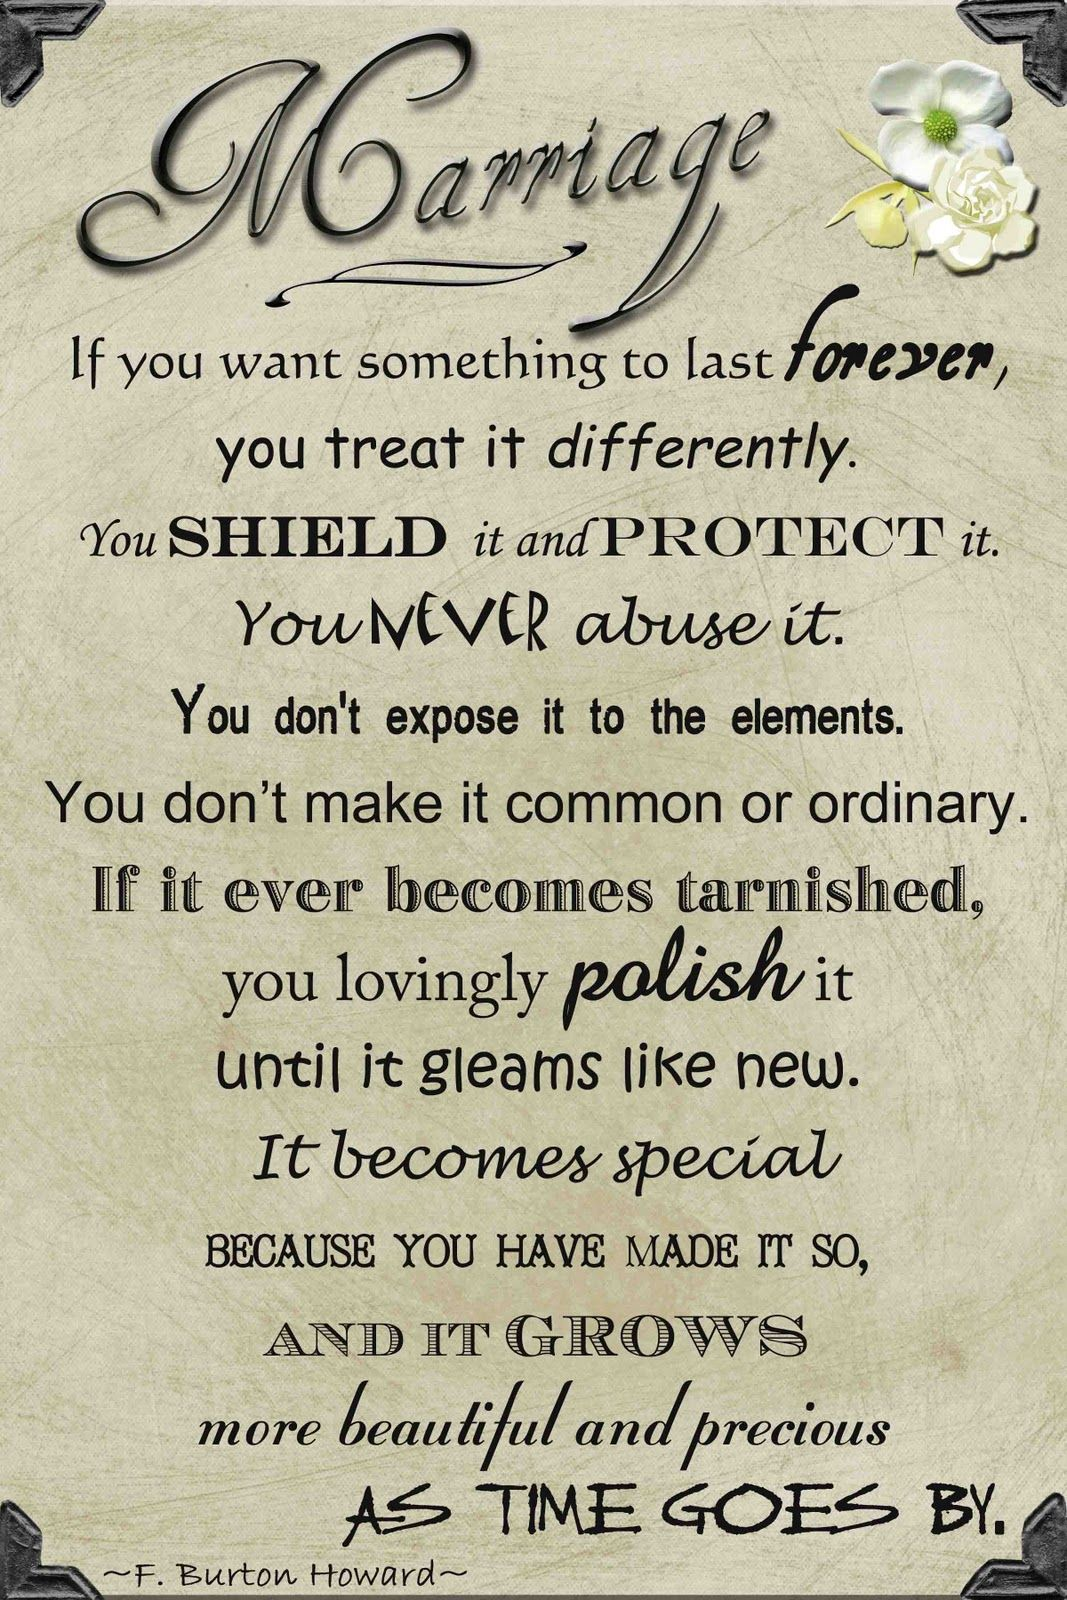 Quotes On Love And Marriage The Font On This Is Terrible But I Like What It Saysit's Stupid